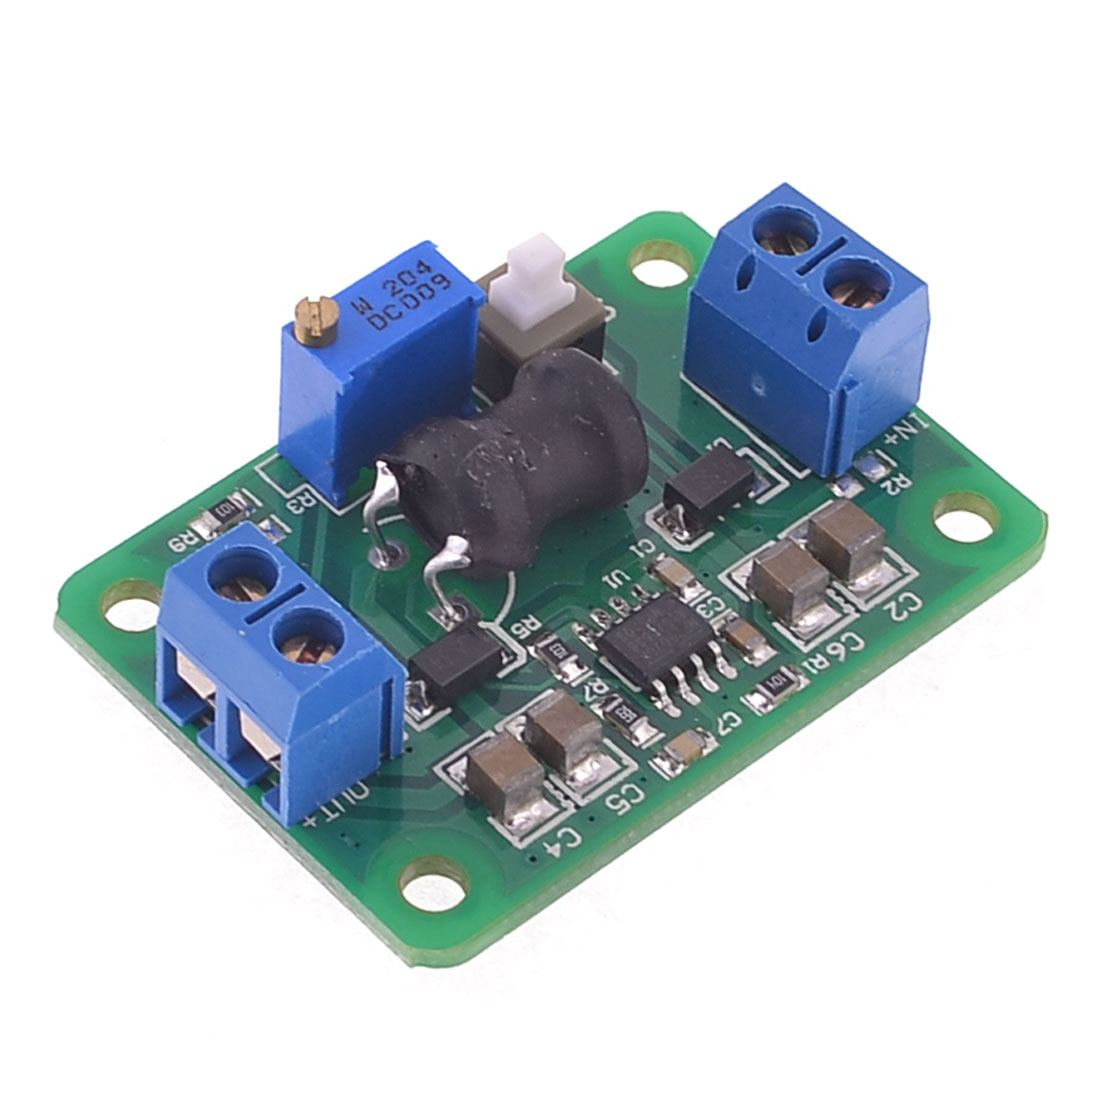 LM2596 DC-DC Adjustable Step Down Module 5V-24V to 0.93V-18V Green